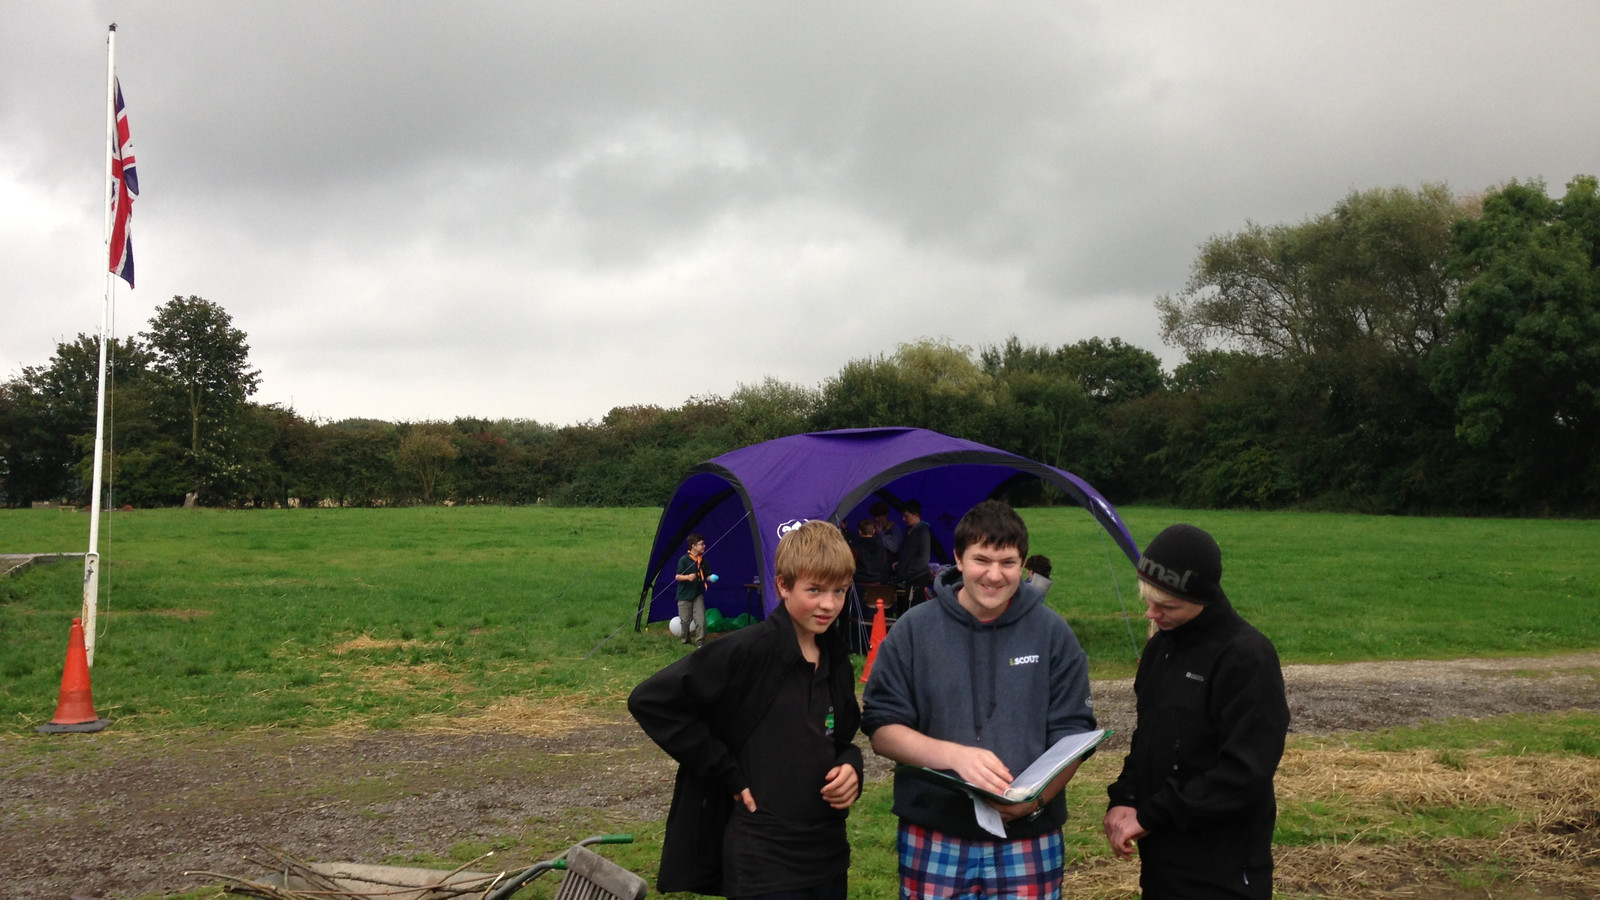 Blacktoft beacon campcraft event